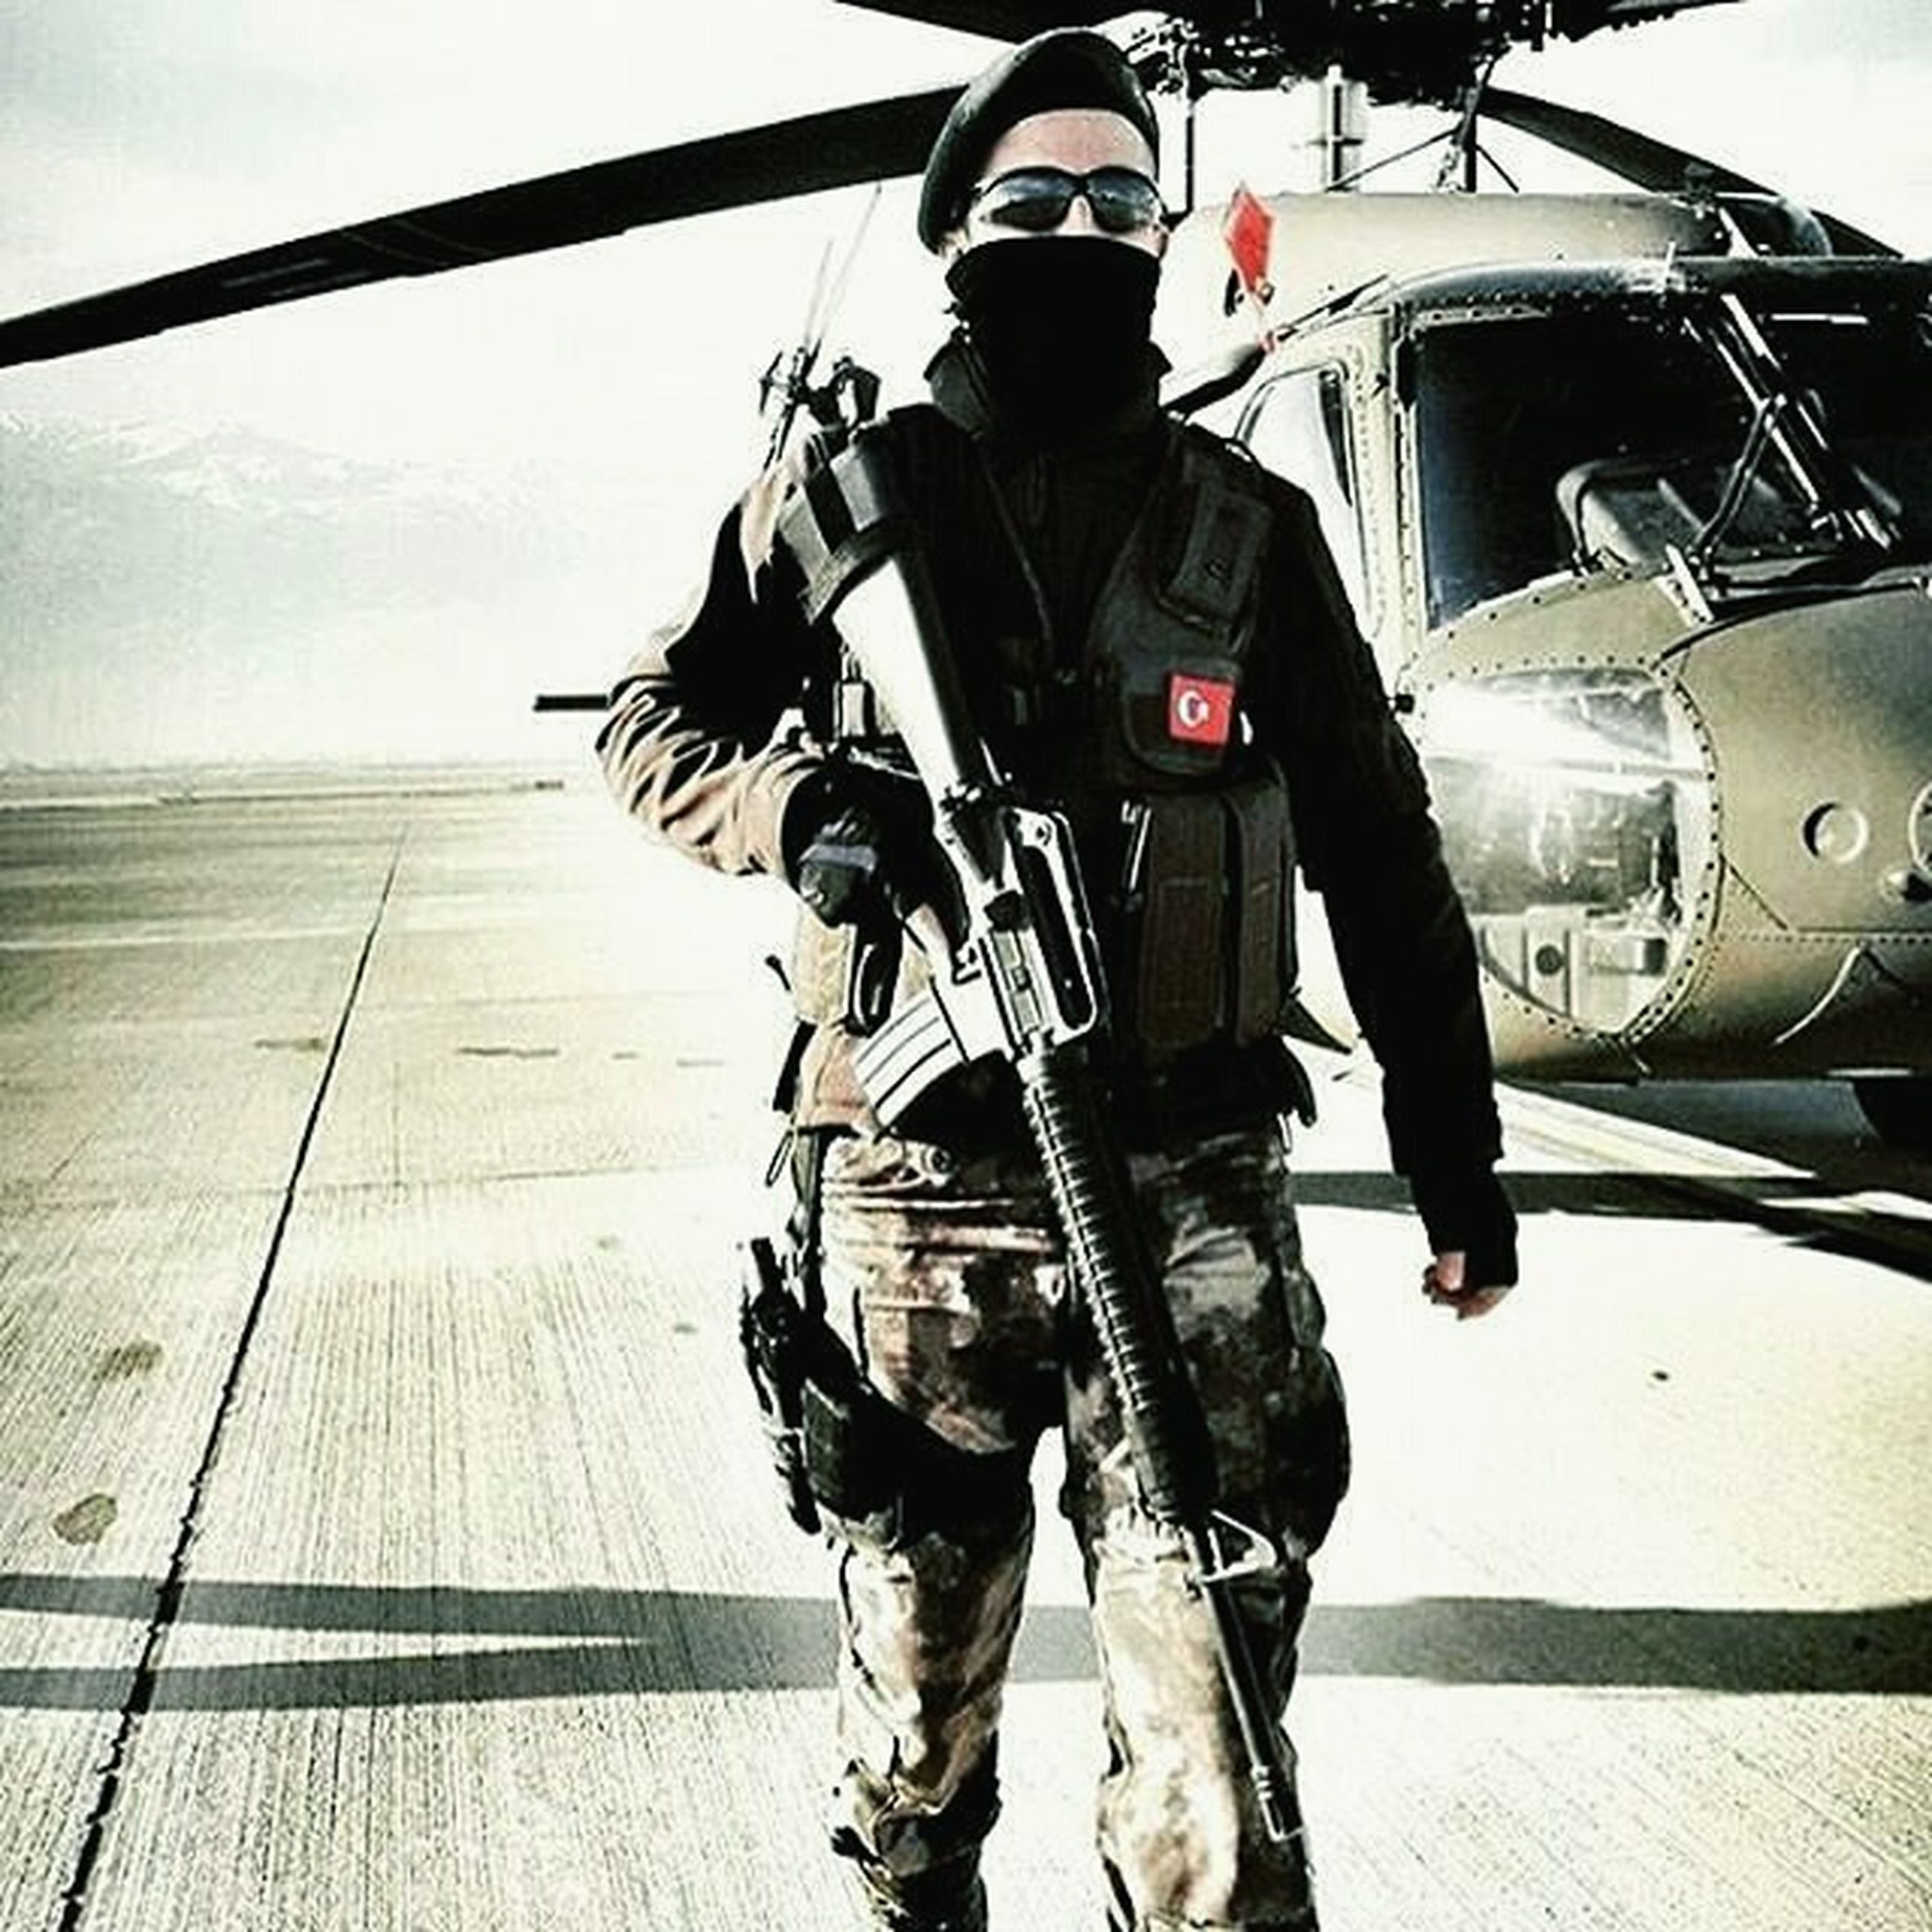 military, transportation, air vehicle, rear view, day, outdoors, military uniform, army, helicopter, army soldier, air force, pilot, headwear, men, one person, army helmet, adults only, adult, cockpit, people, camouflage clothing